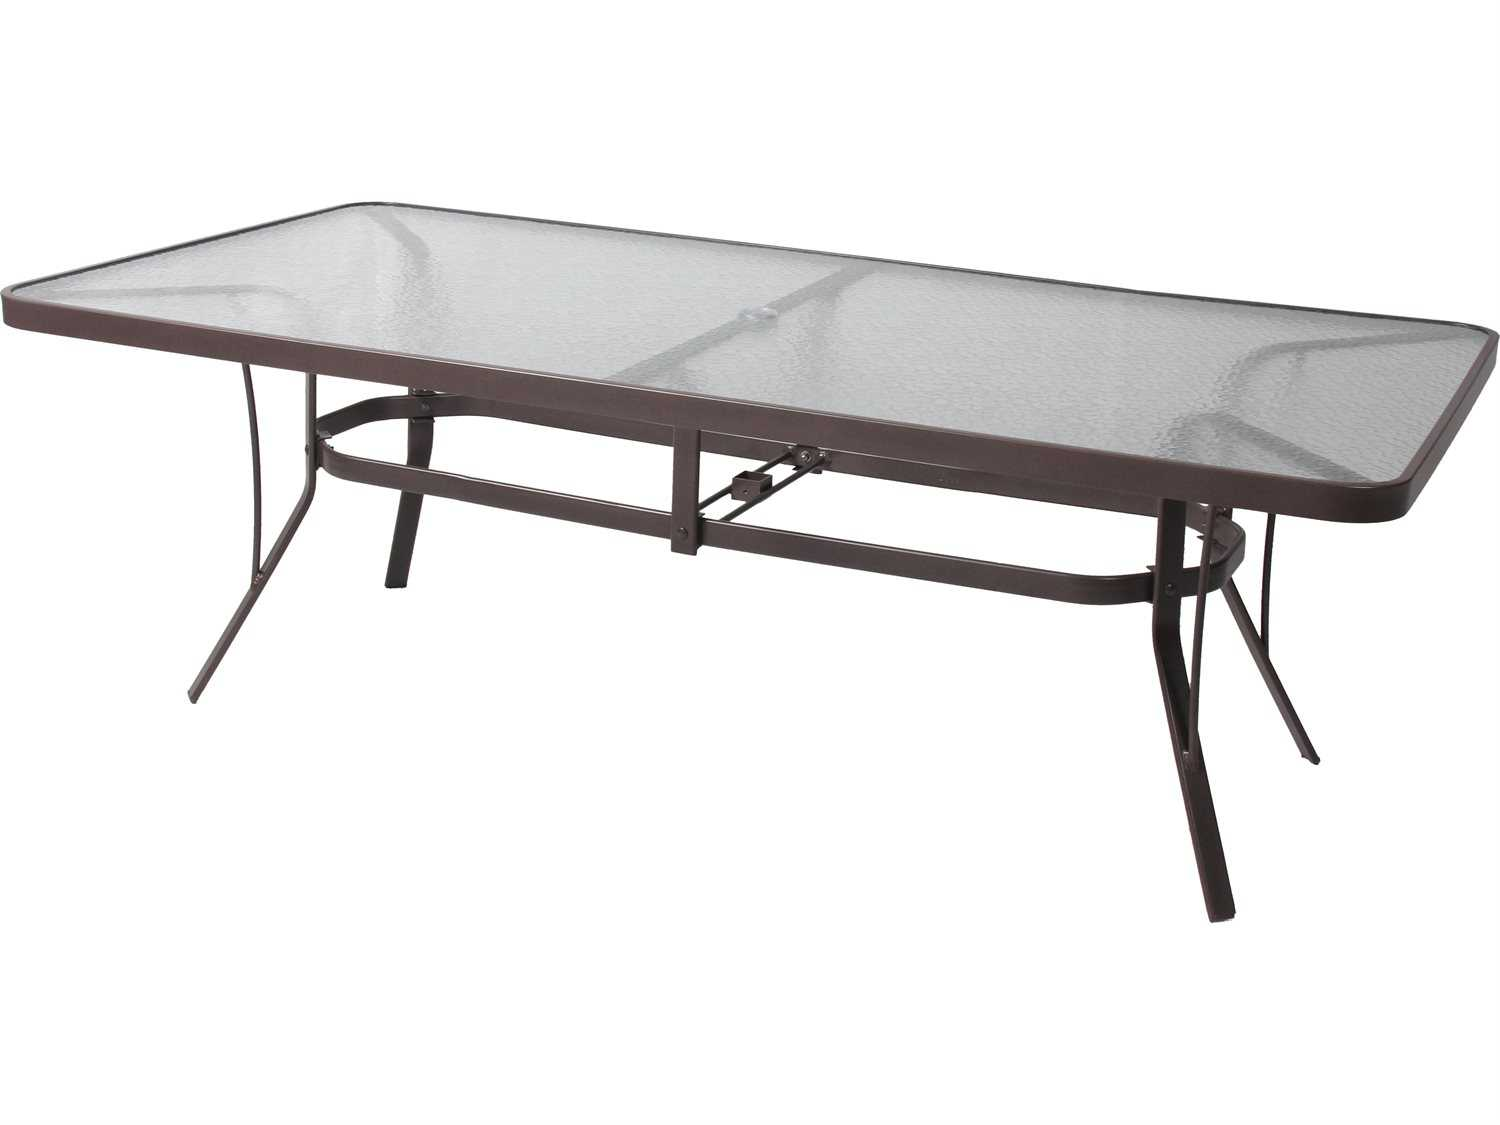 Square Glass Top Dining Table Cast Aluminum 60 39 39 Square Glass Top Dining Table With Umbrella Hole